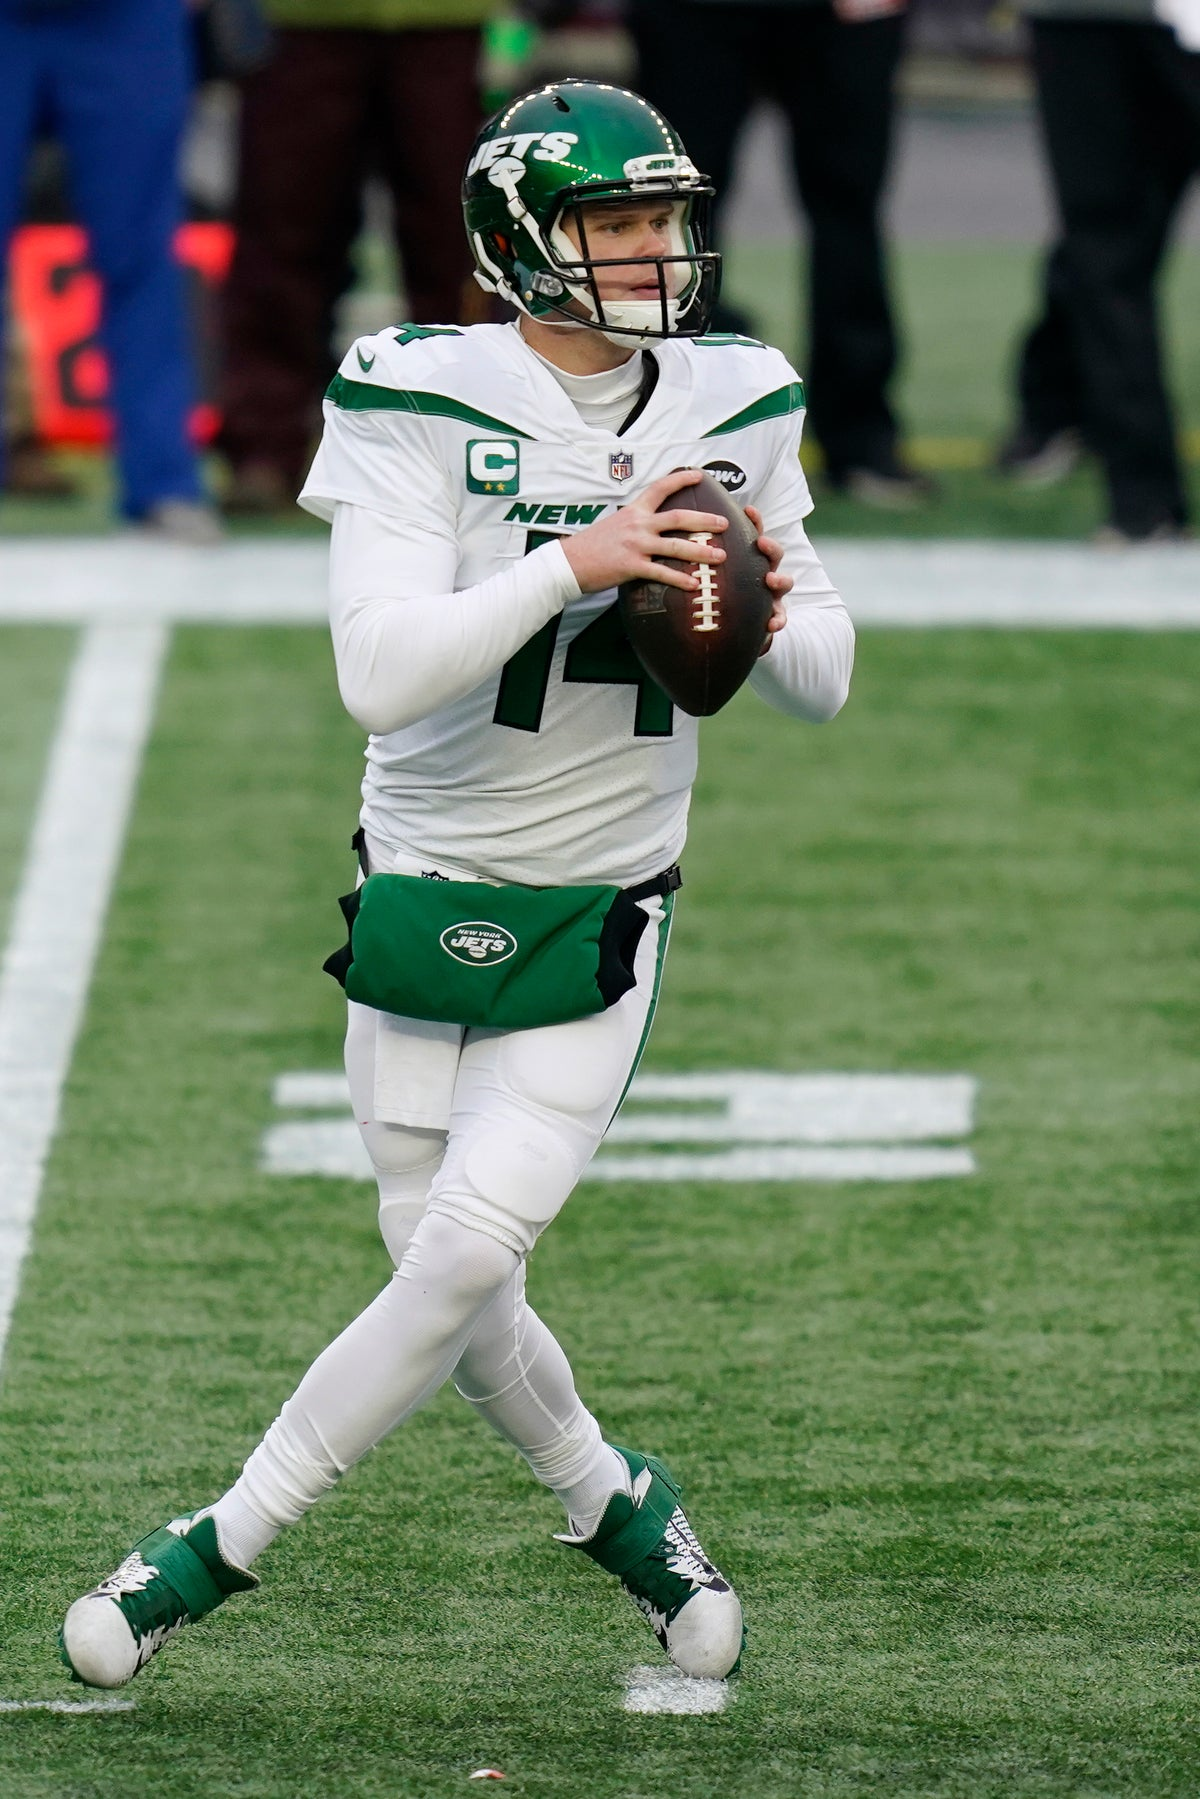 New York Jets quarterback Sam Darnold drops back to pass against the New England Patriots in the first half of an NFL football game, Sunday, Jan. 3, 2021, in Foxborough, Mass. (AP Photo/Elise Amendola)